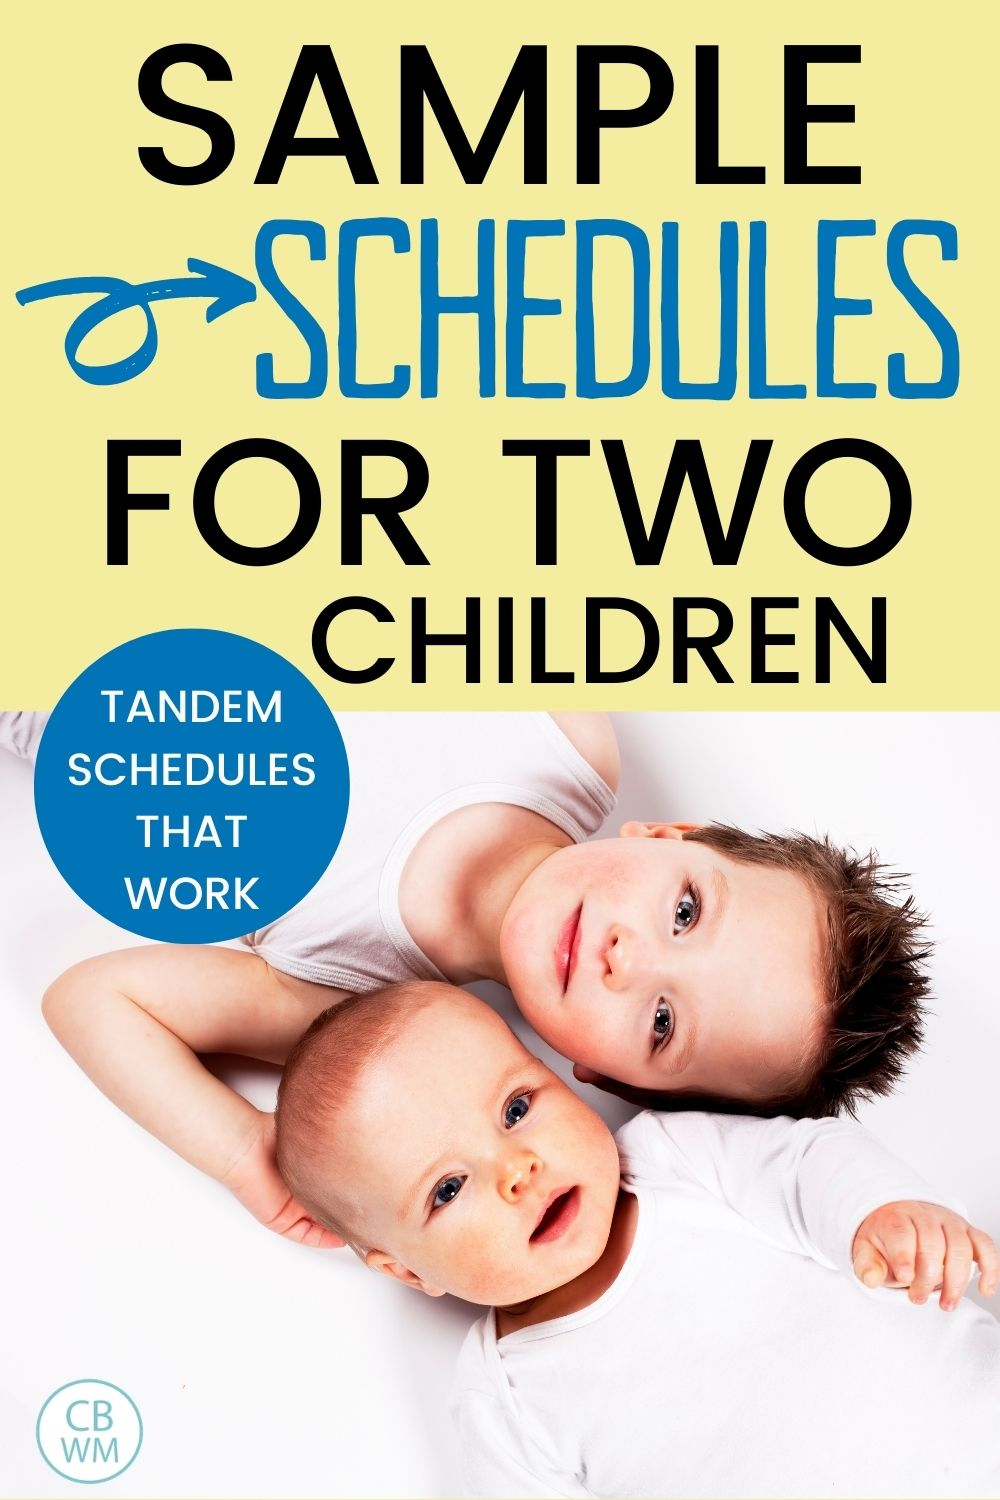 sample schedules for two kids pinnable image